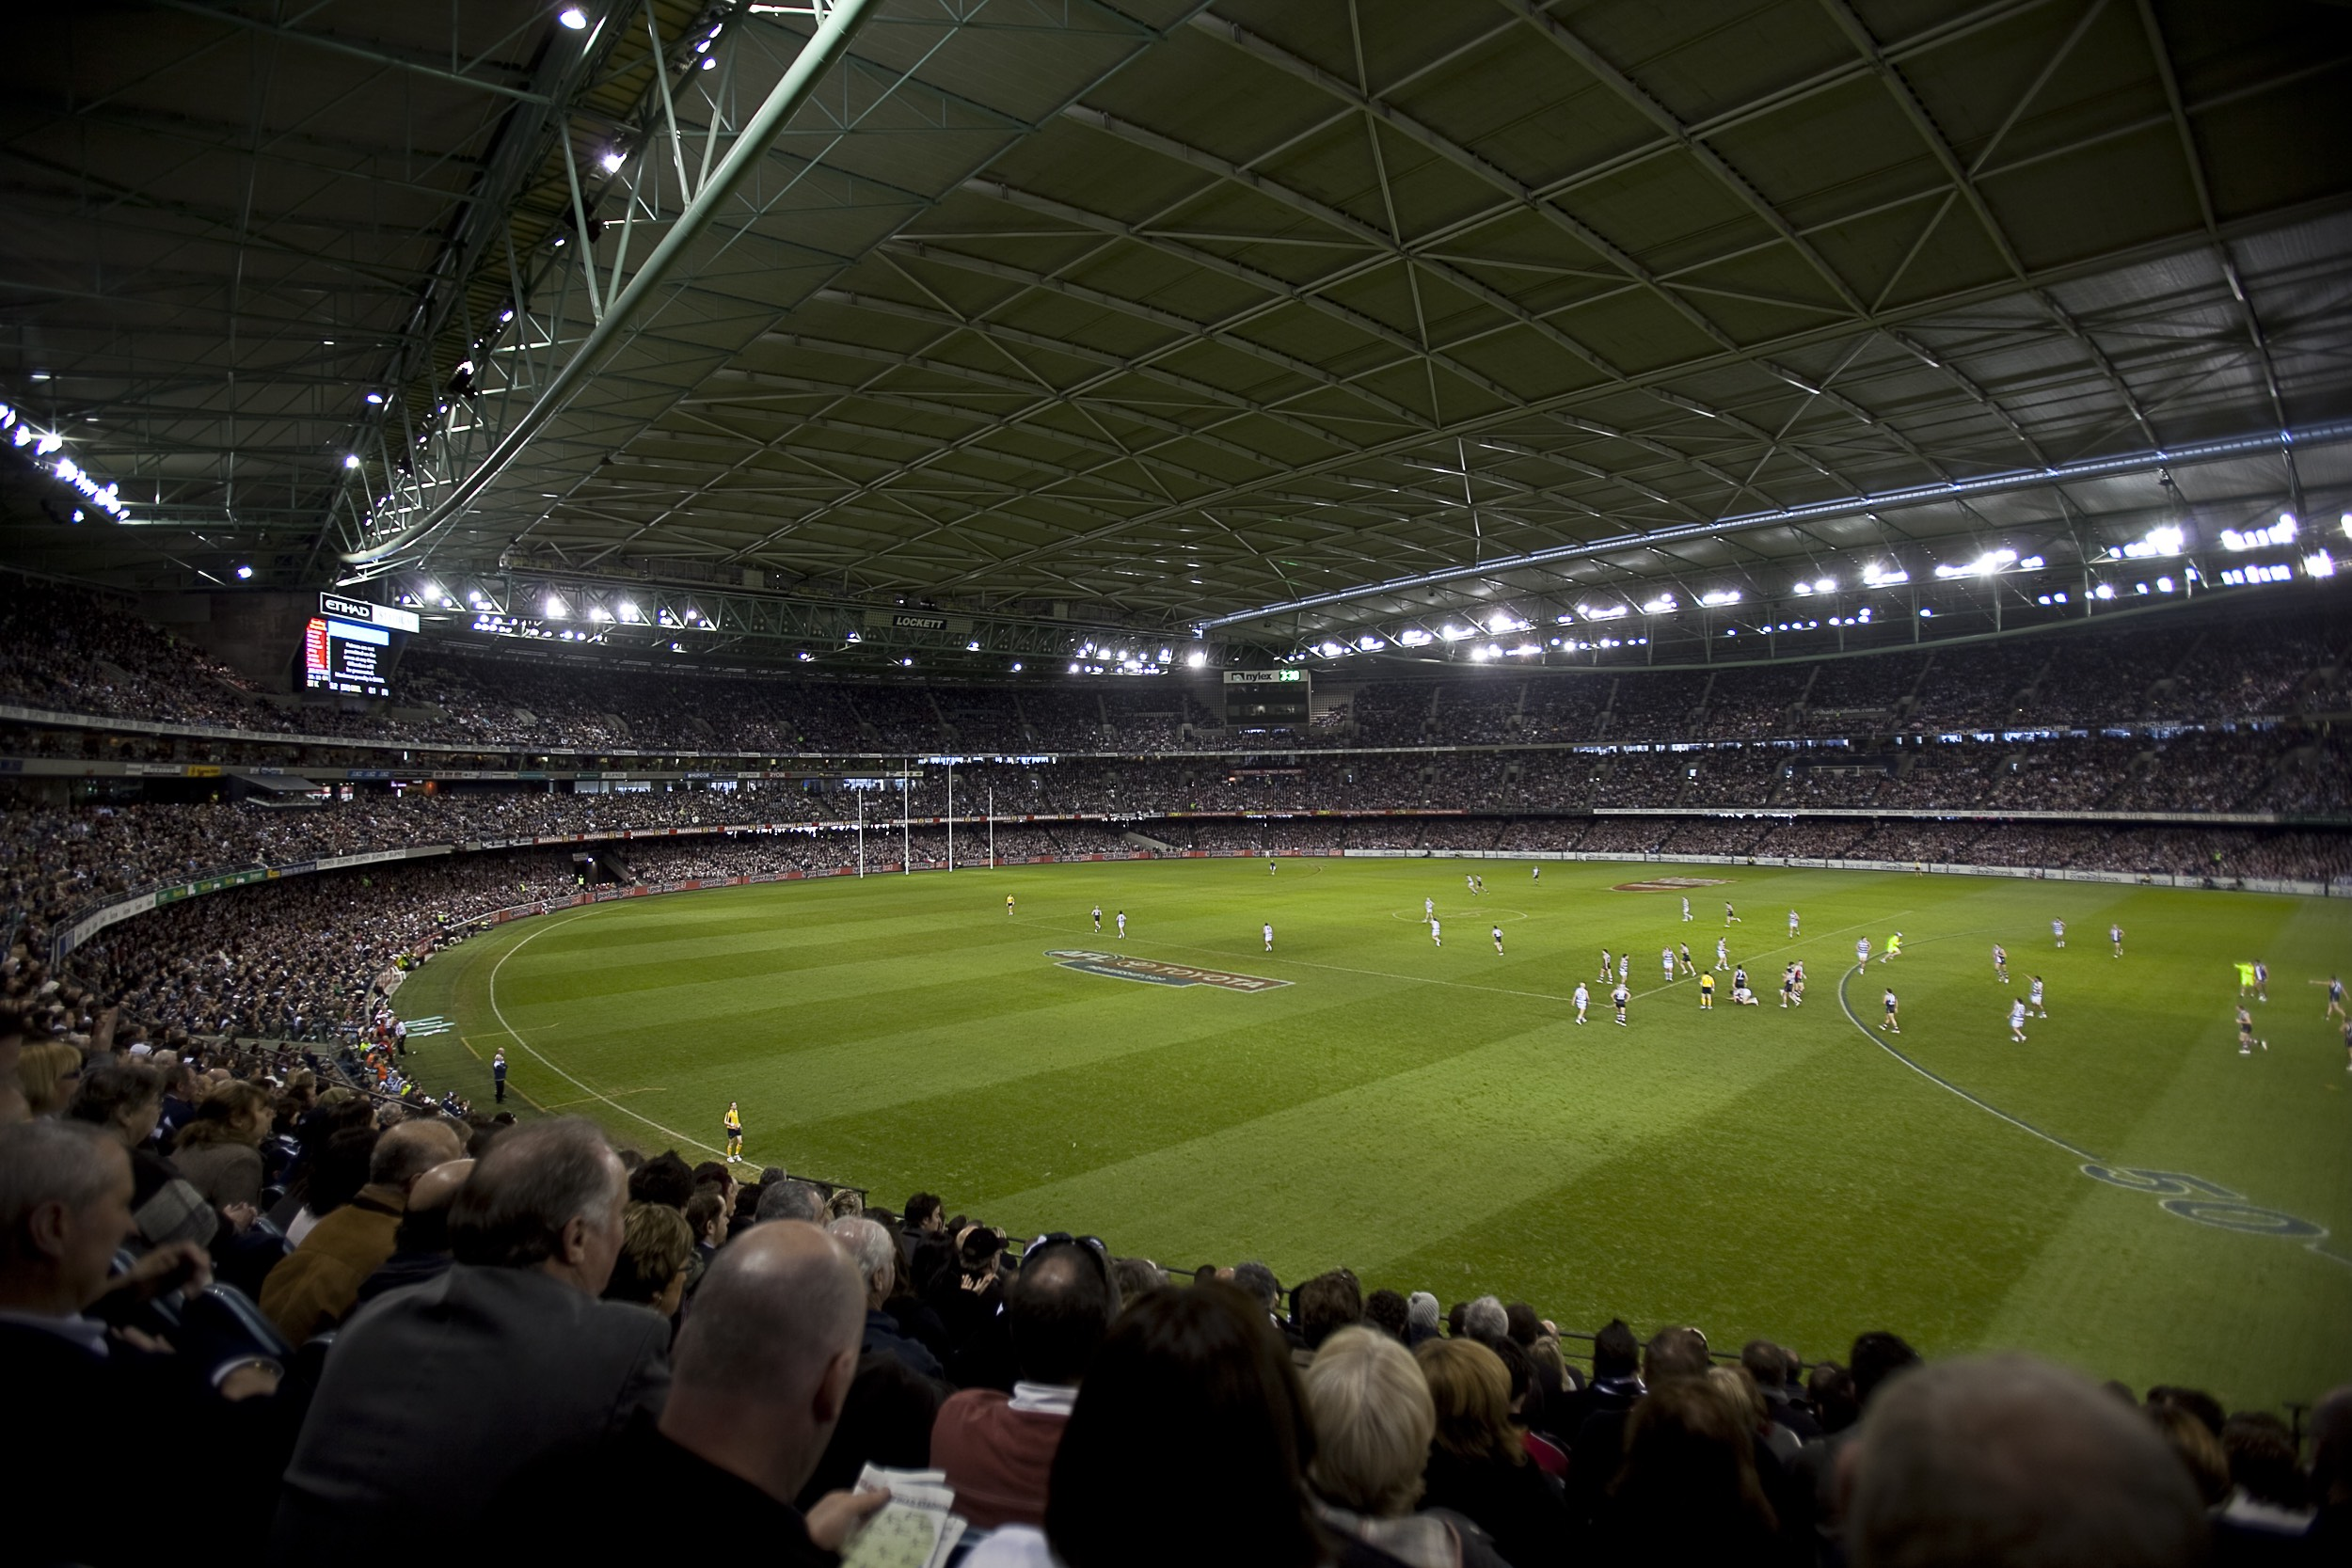 Essendon v Hawthorn Marvel Stadium Medallion Club seating